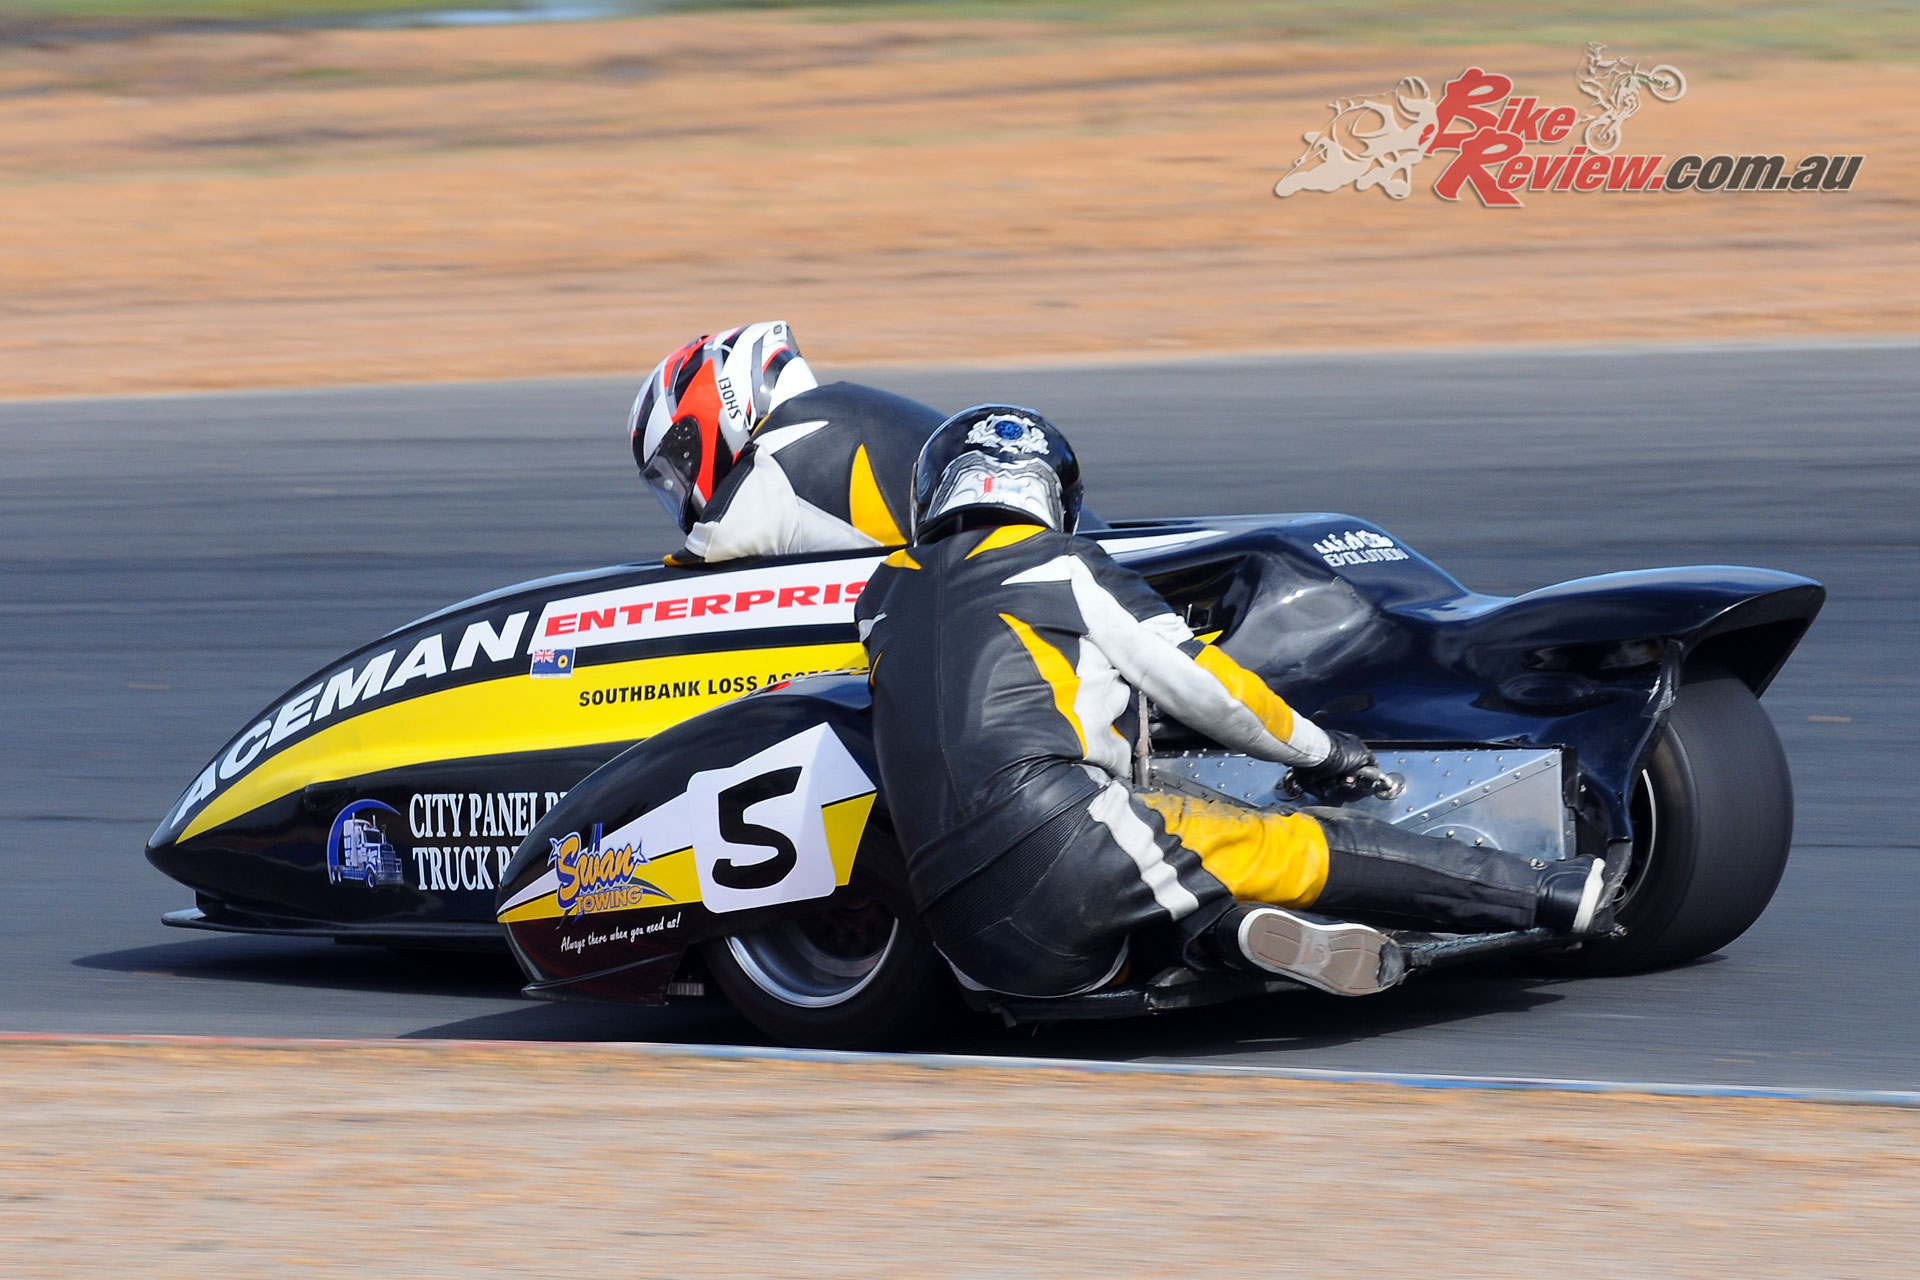 Murray Stronach/Steve Marshall (Aceman Enterprises Suzuki 1000)